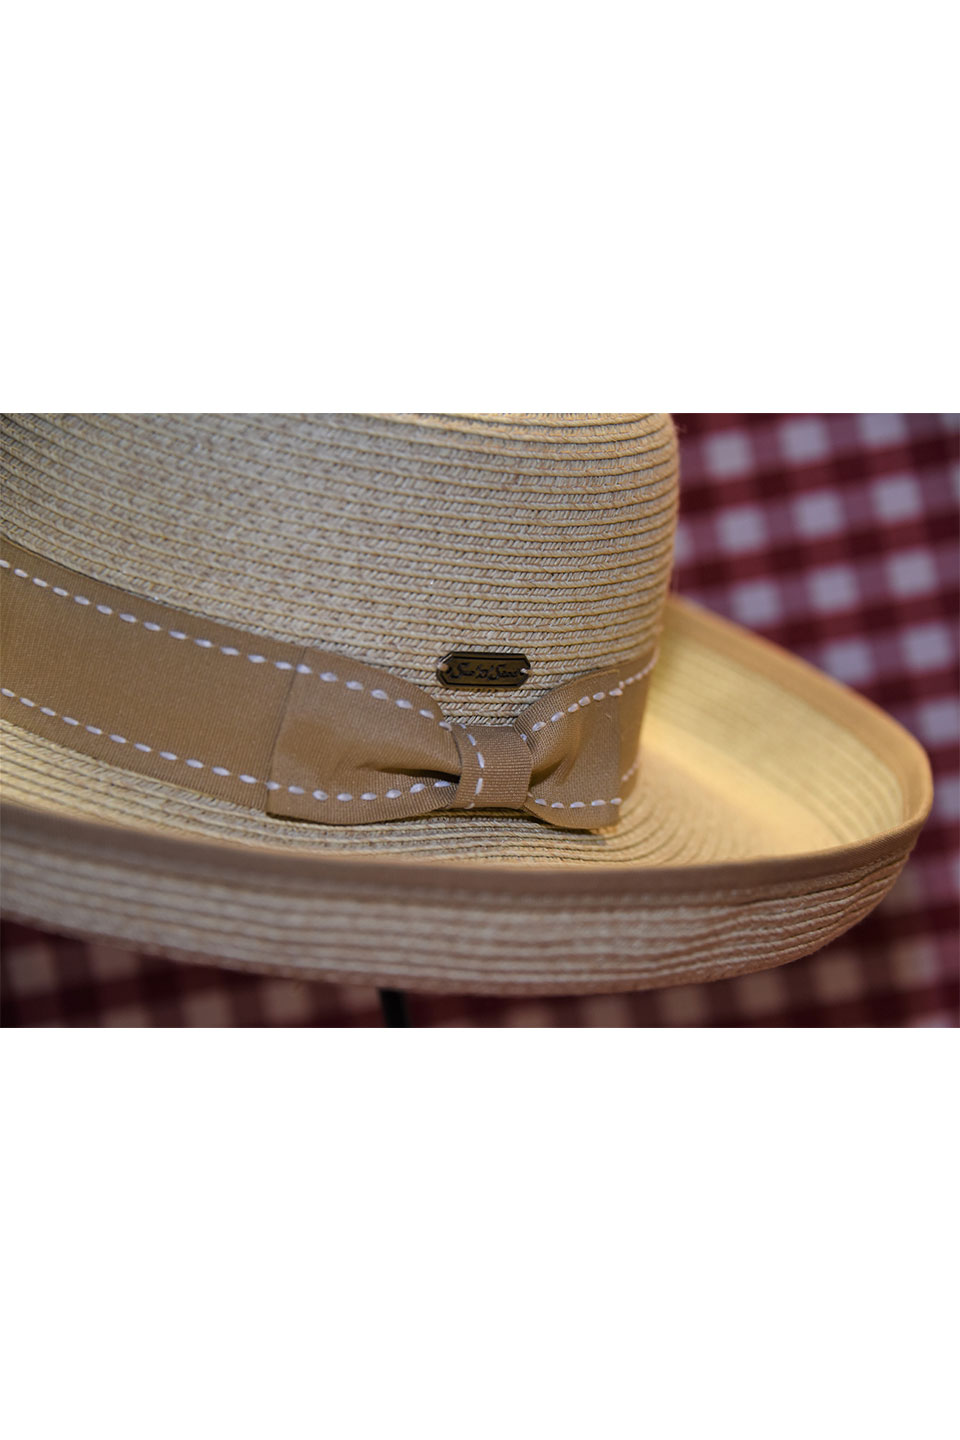 Sun N Sand Hat with Light Tan Ribbon